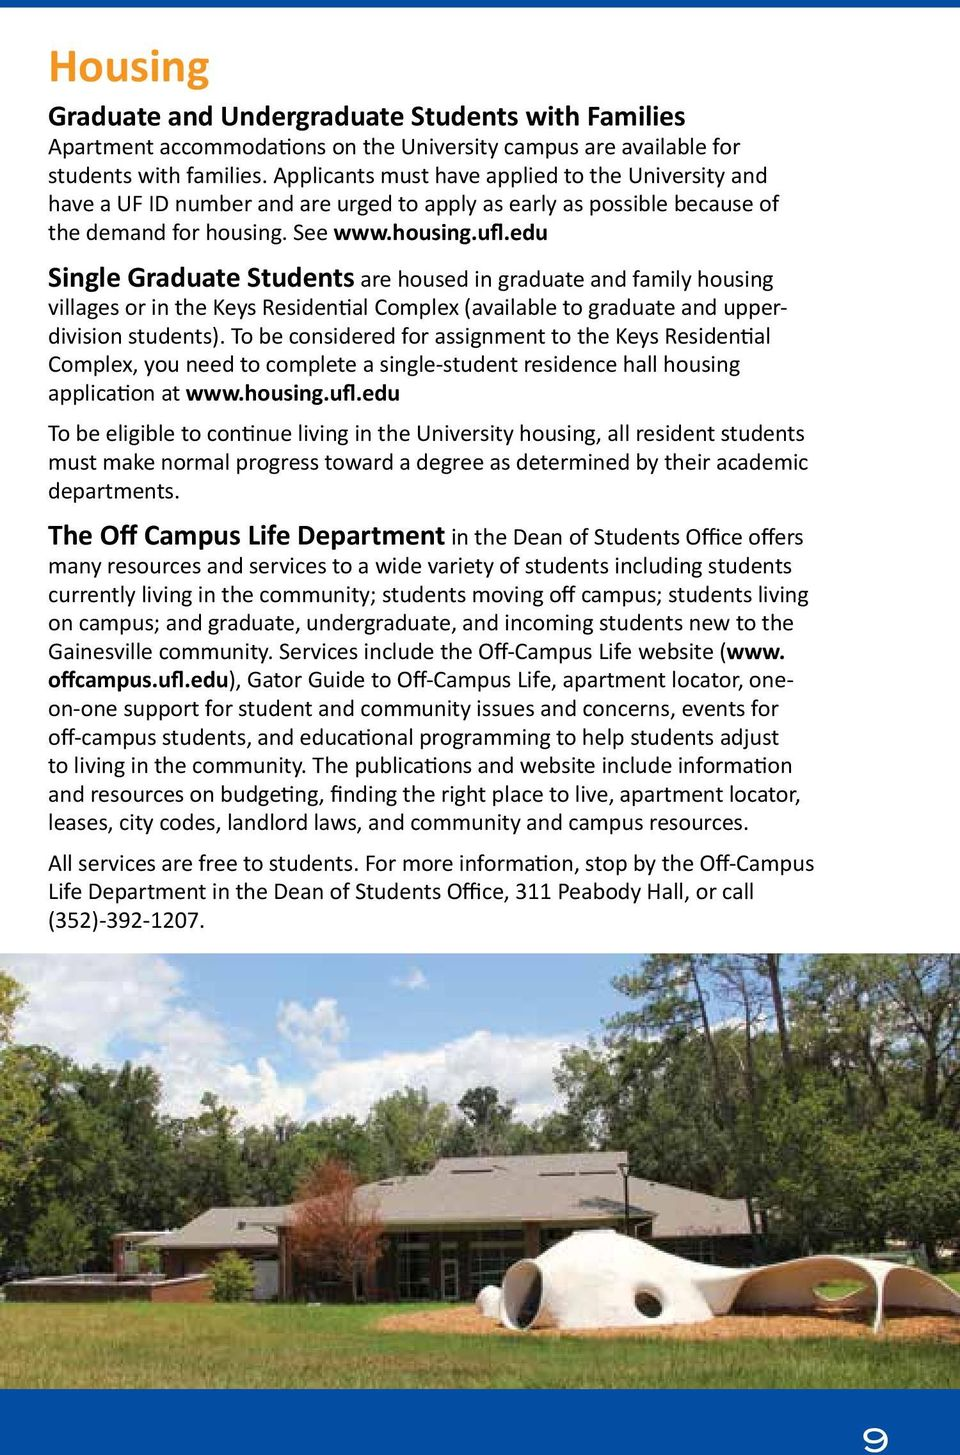 edu Single Graduate Students are housed in graduate and faily housing villages or in the Keys Residential Coplex (available to graduate and upperdivision students).